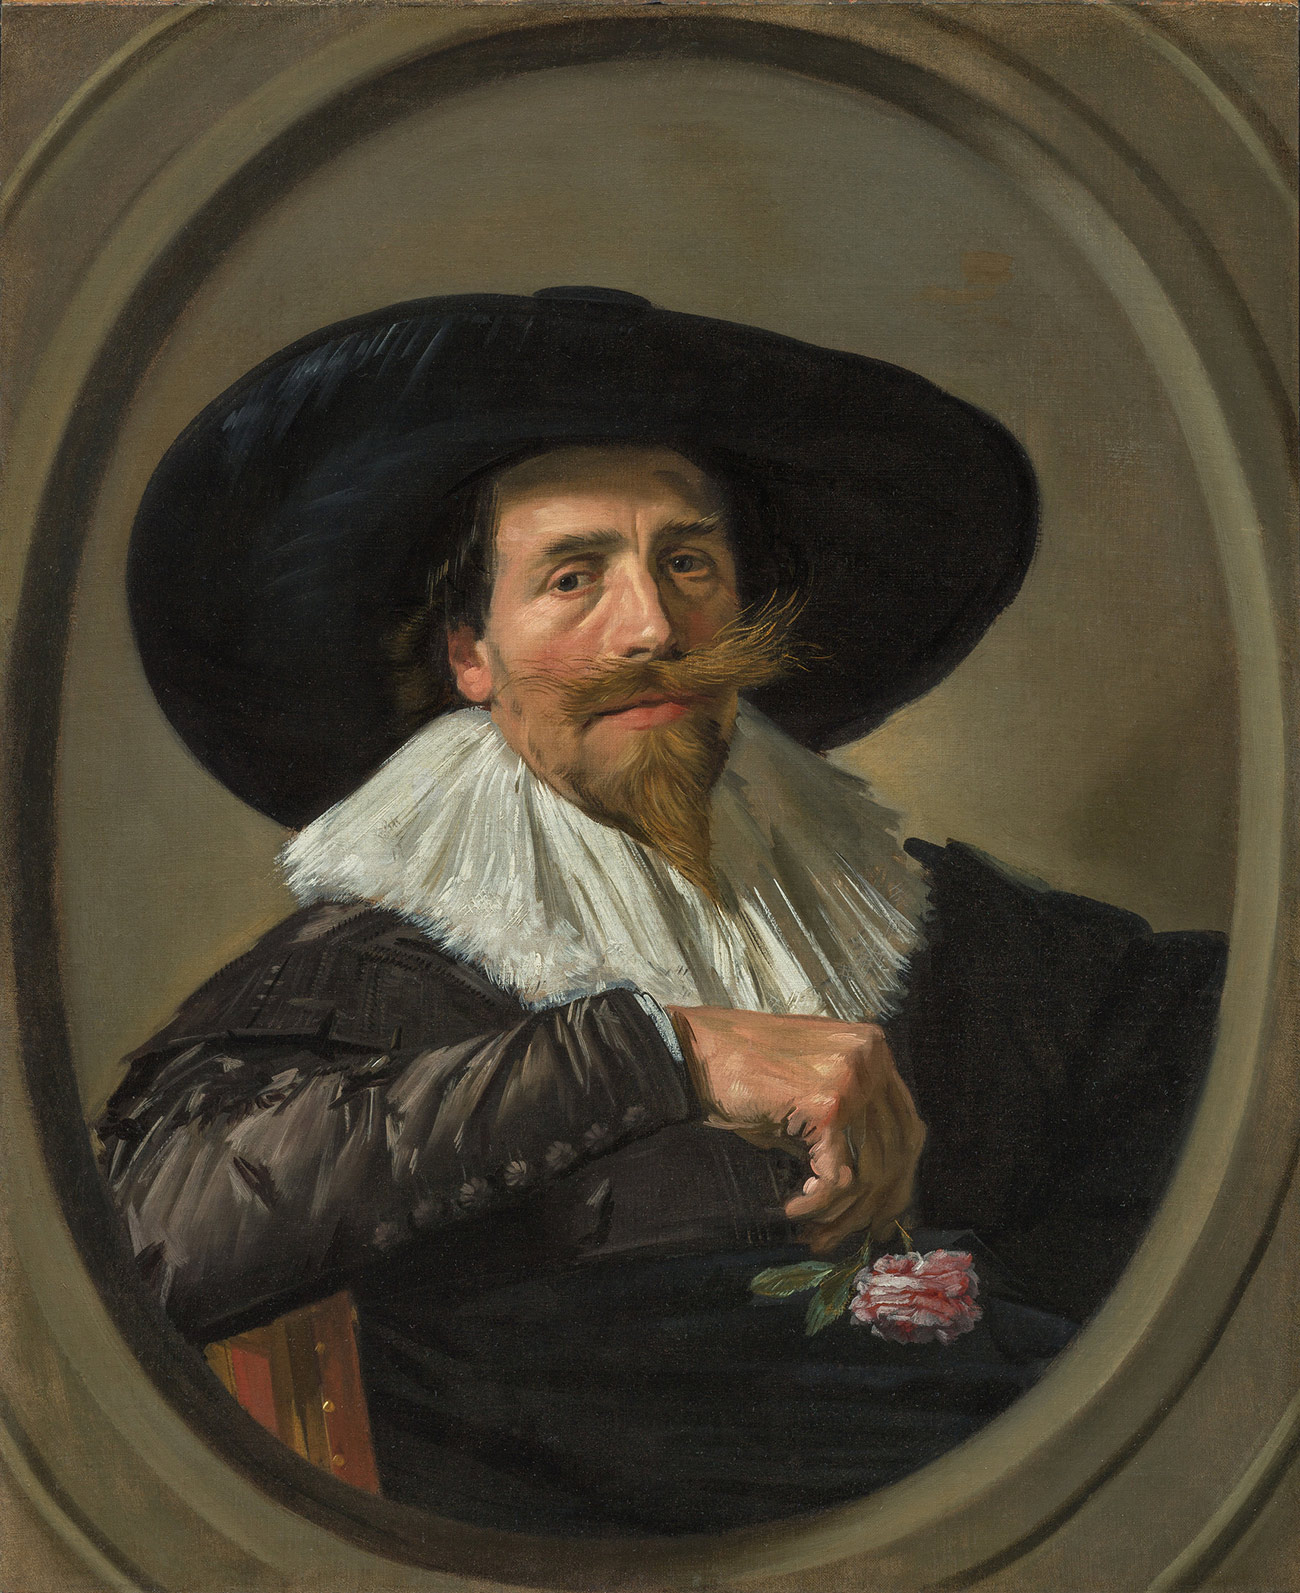 Portrait of a man with a pointy blond beard and wide, bushy mustache. He's wearing a very wide-brimmed hat, white ruff, and buttoned black jacket, and is holding a pink rose in his right hand, which is propped on the back of his chair.